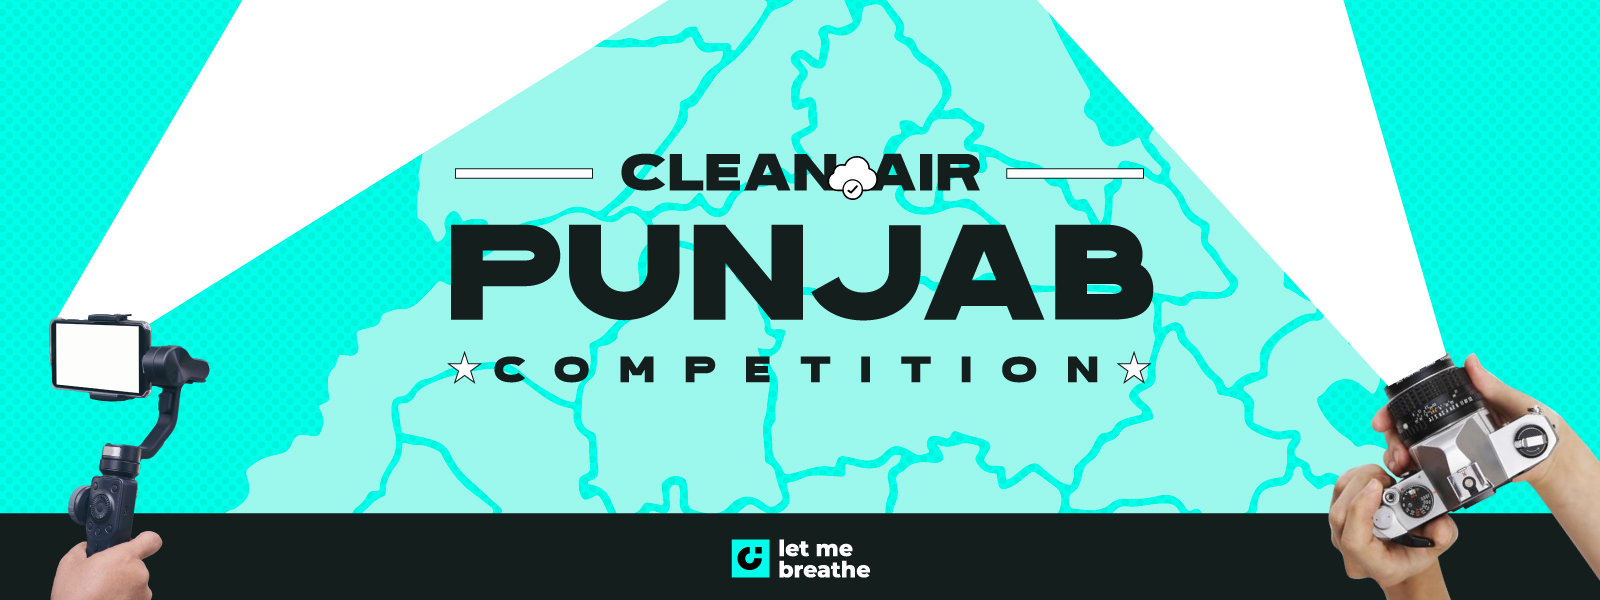 Clean Air Punjab Competition 1